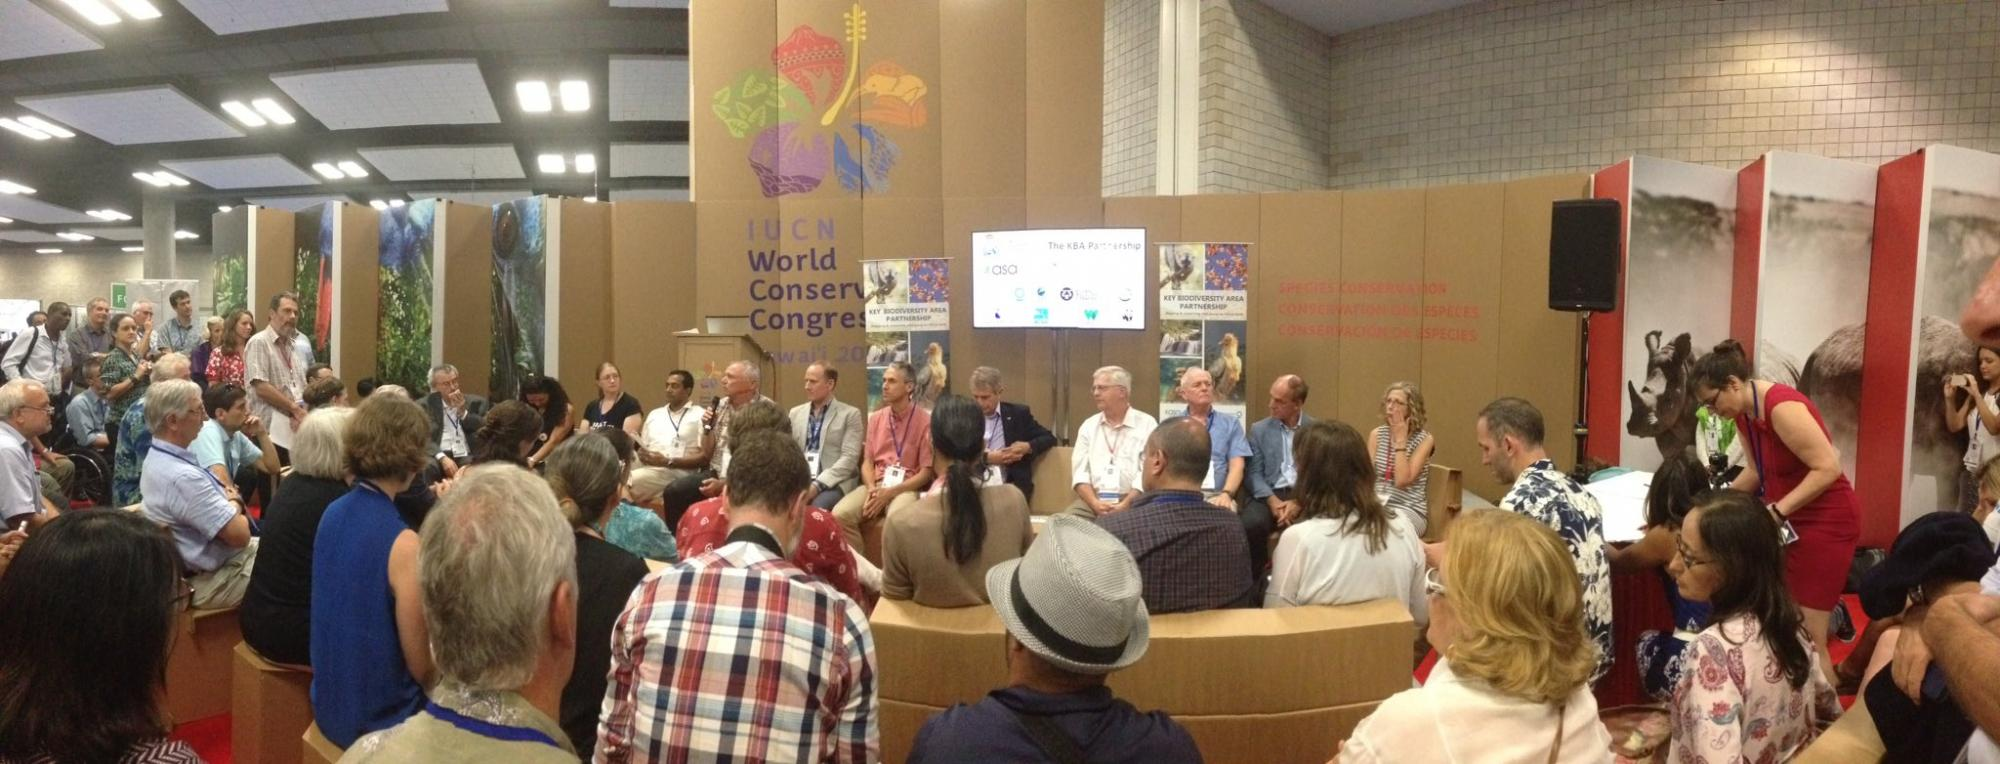 KBA Partnership announcement at the World Conservation Congress